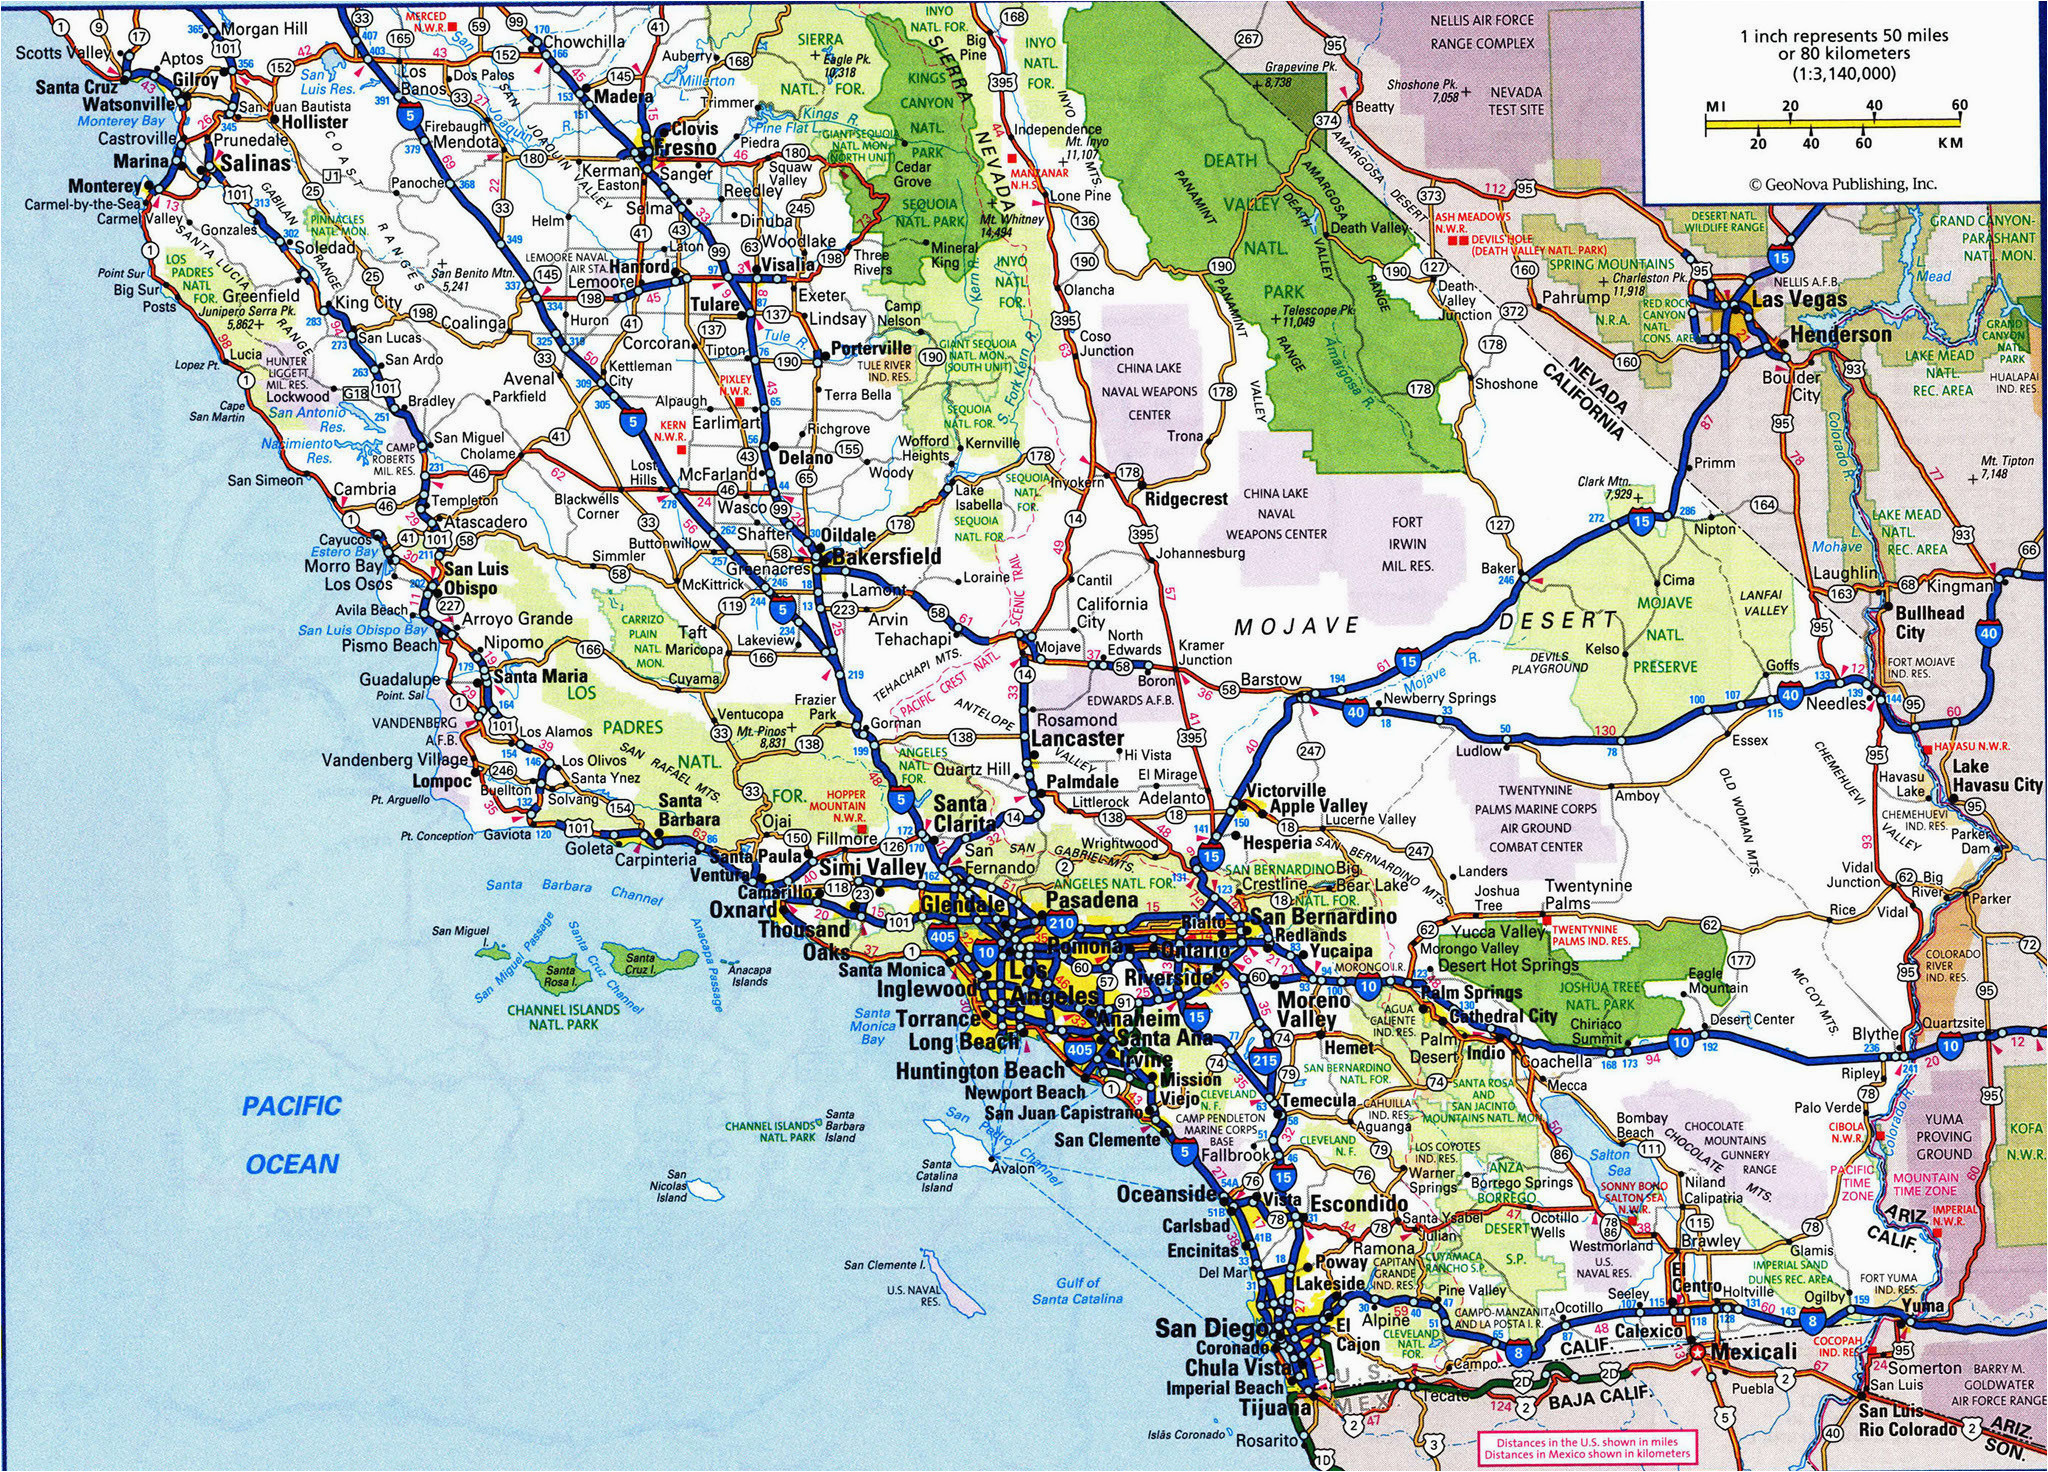 Diners Drive-ins and Dives Map California | secretmuseum on